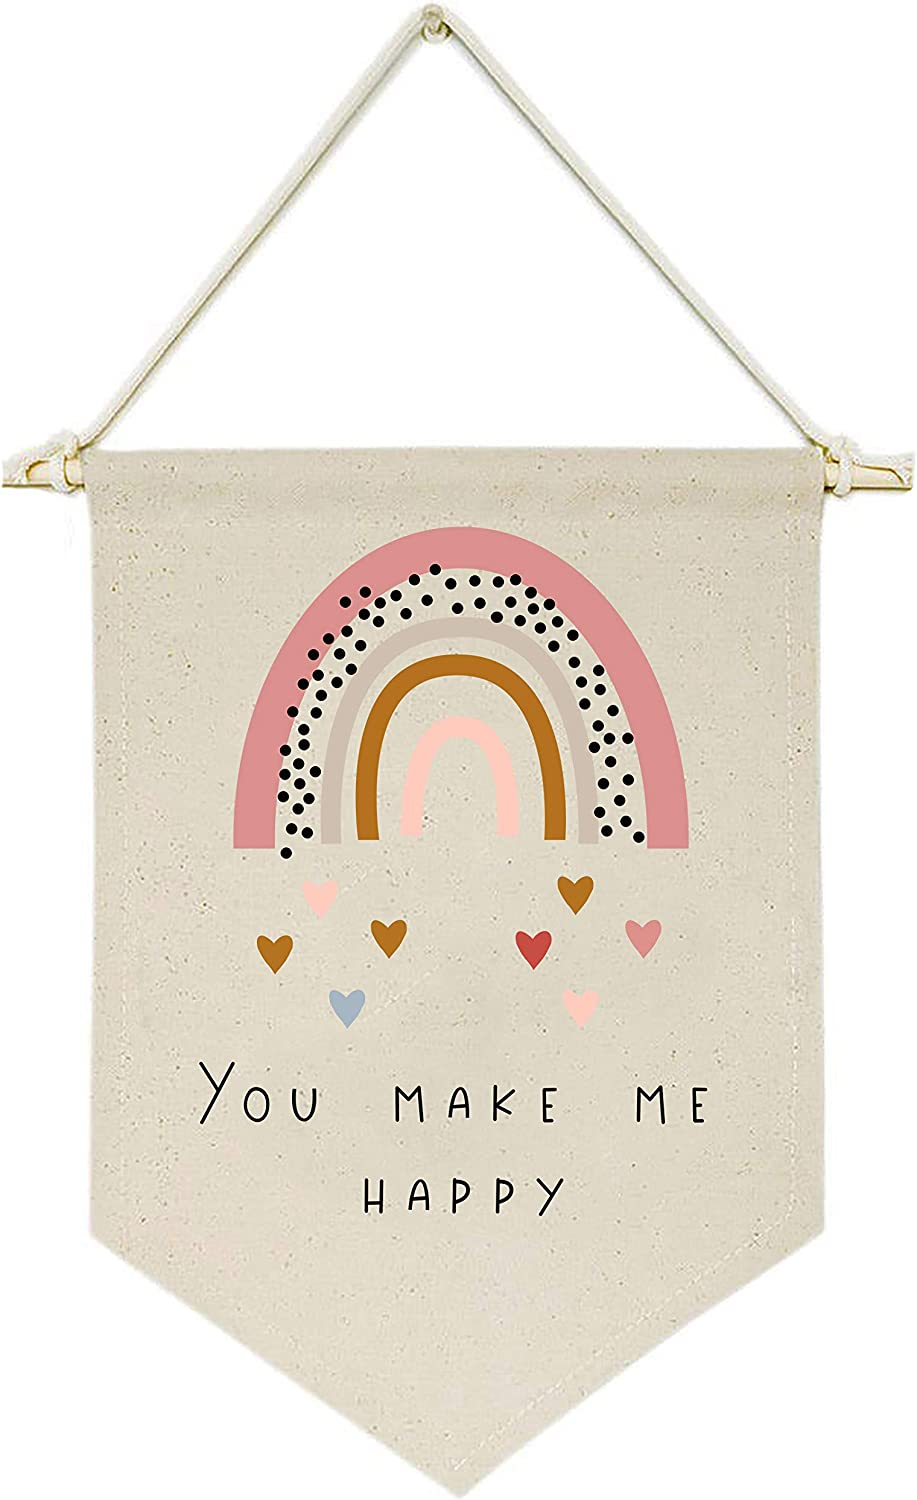 Topthink You Make Me Happy,Rainbow,Heart - Canvas Hanging Flag Banner Wall Sign Decor Gift for Baby Kids Girl Boy Nursery Teen Room Front Door